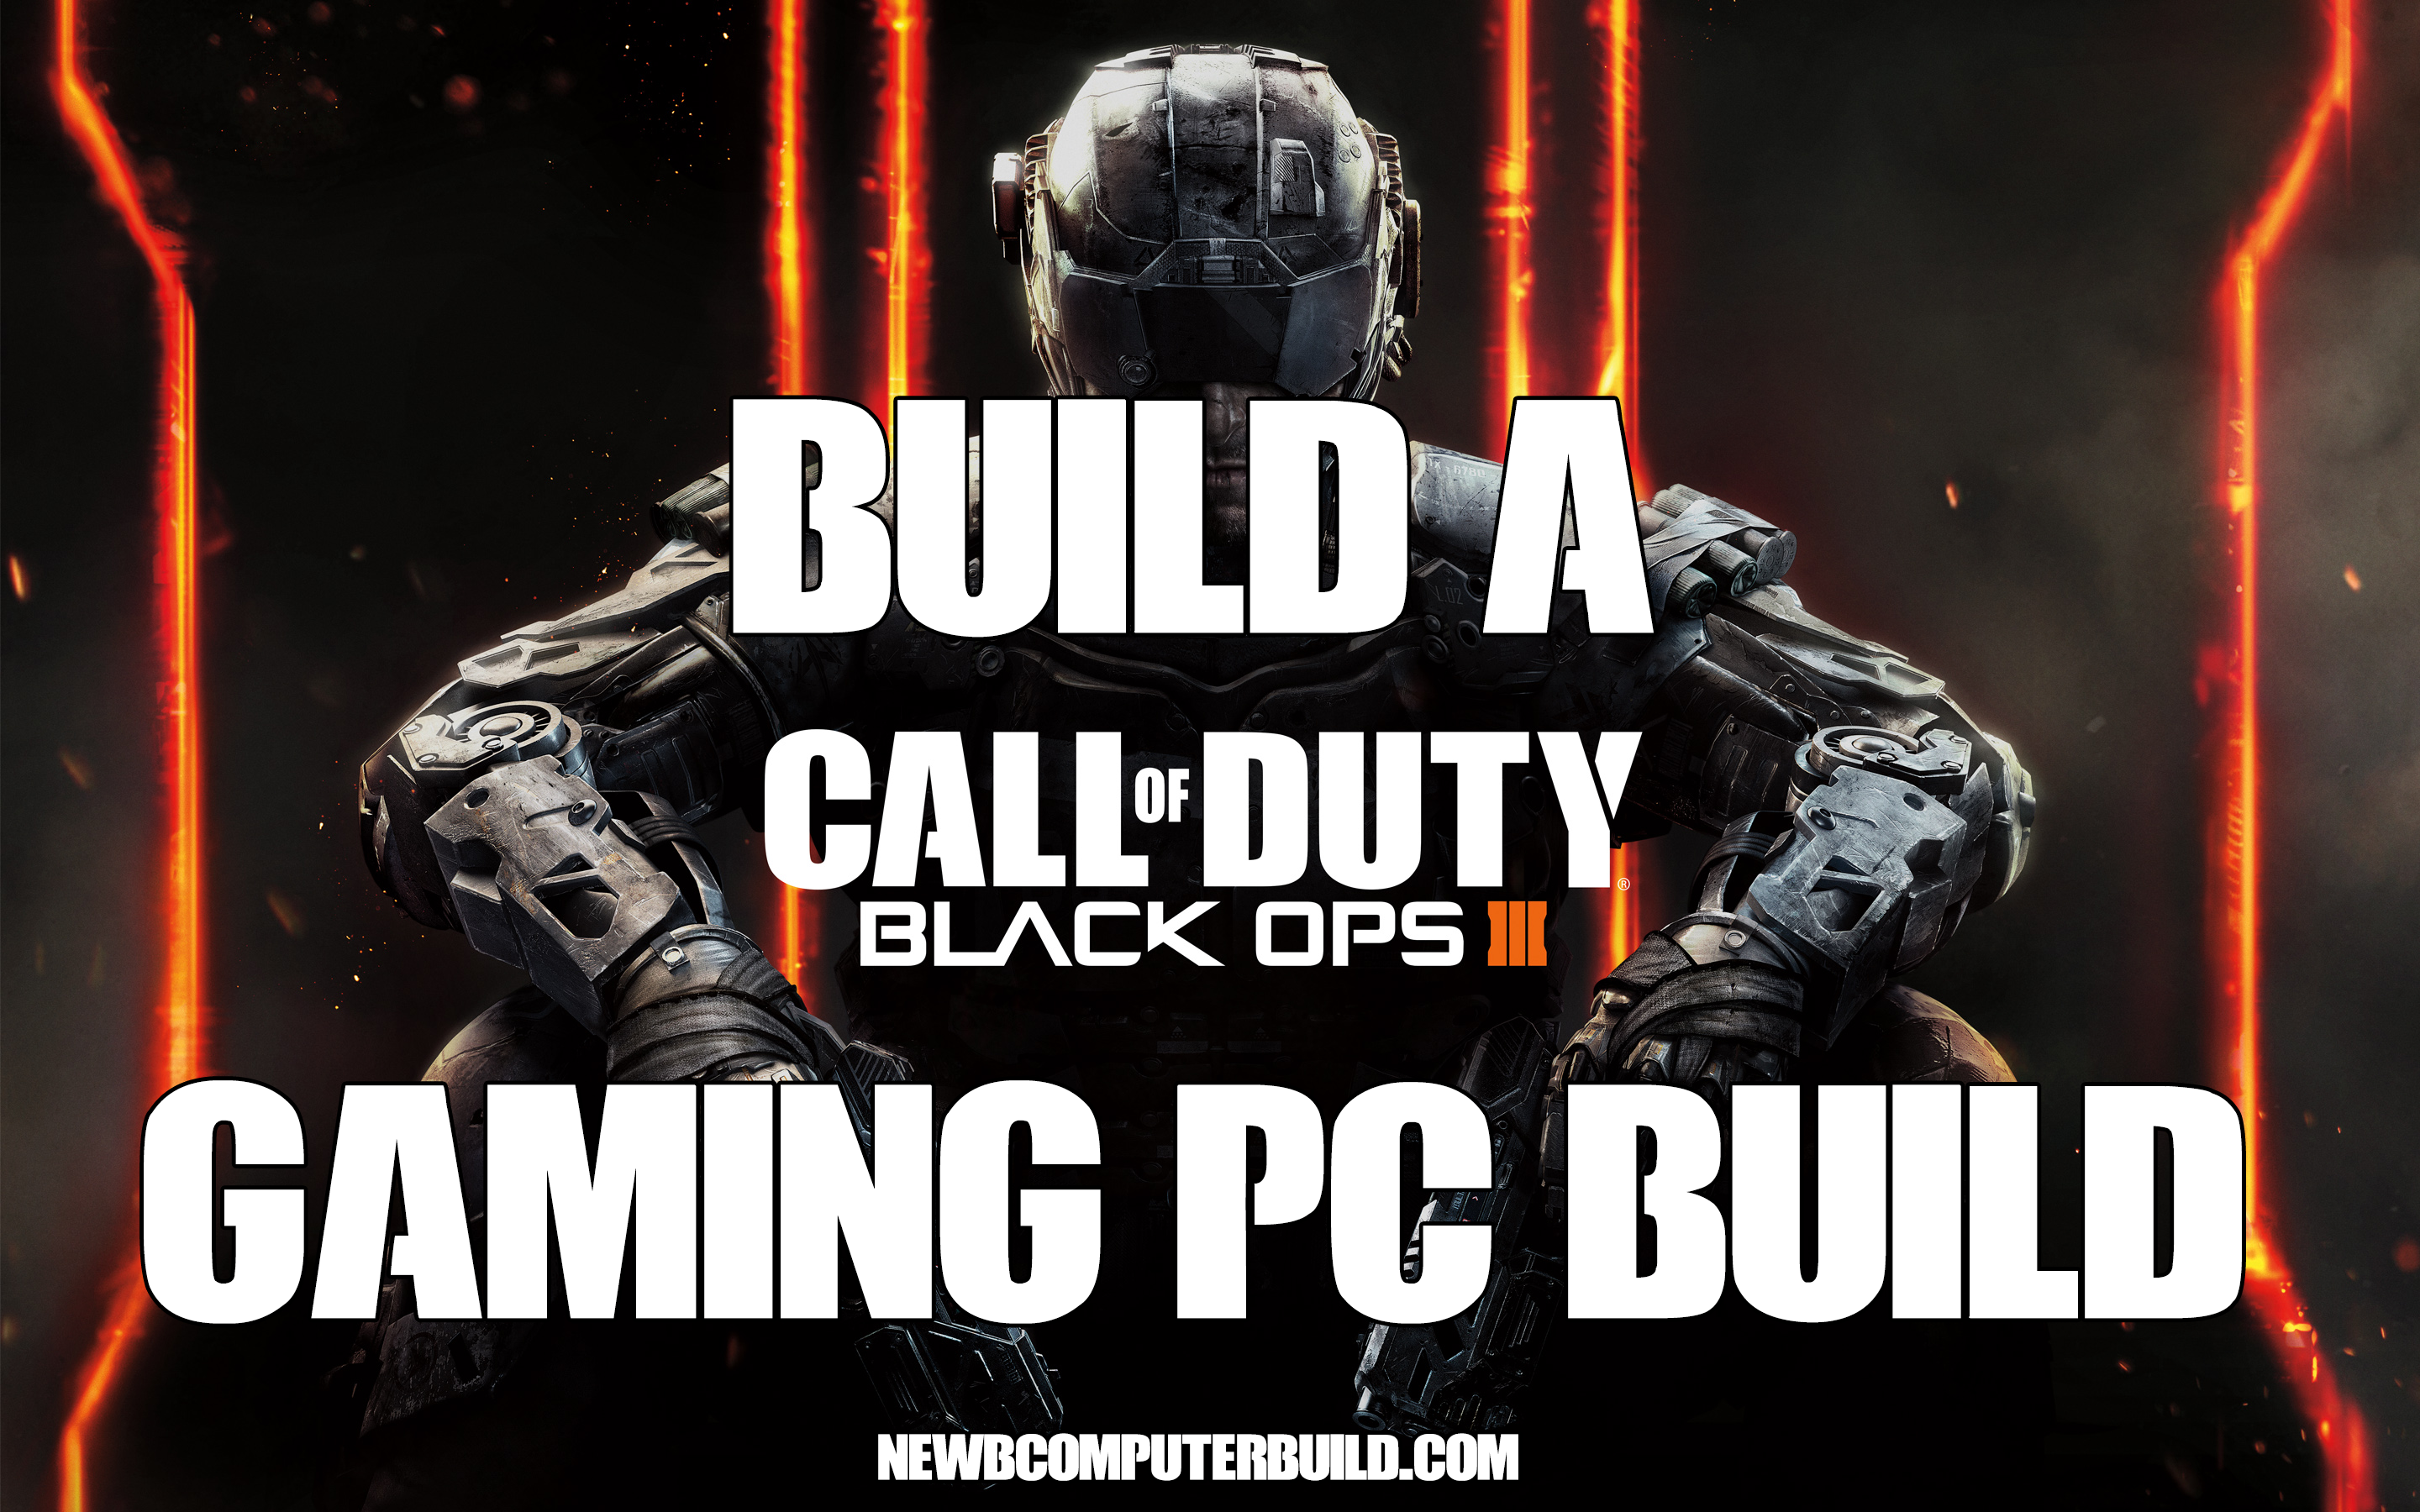 Call of Duty Black Ops III Gaming PC Build